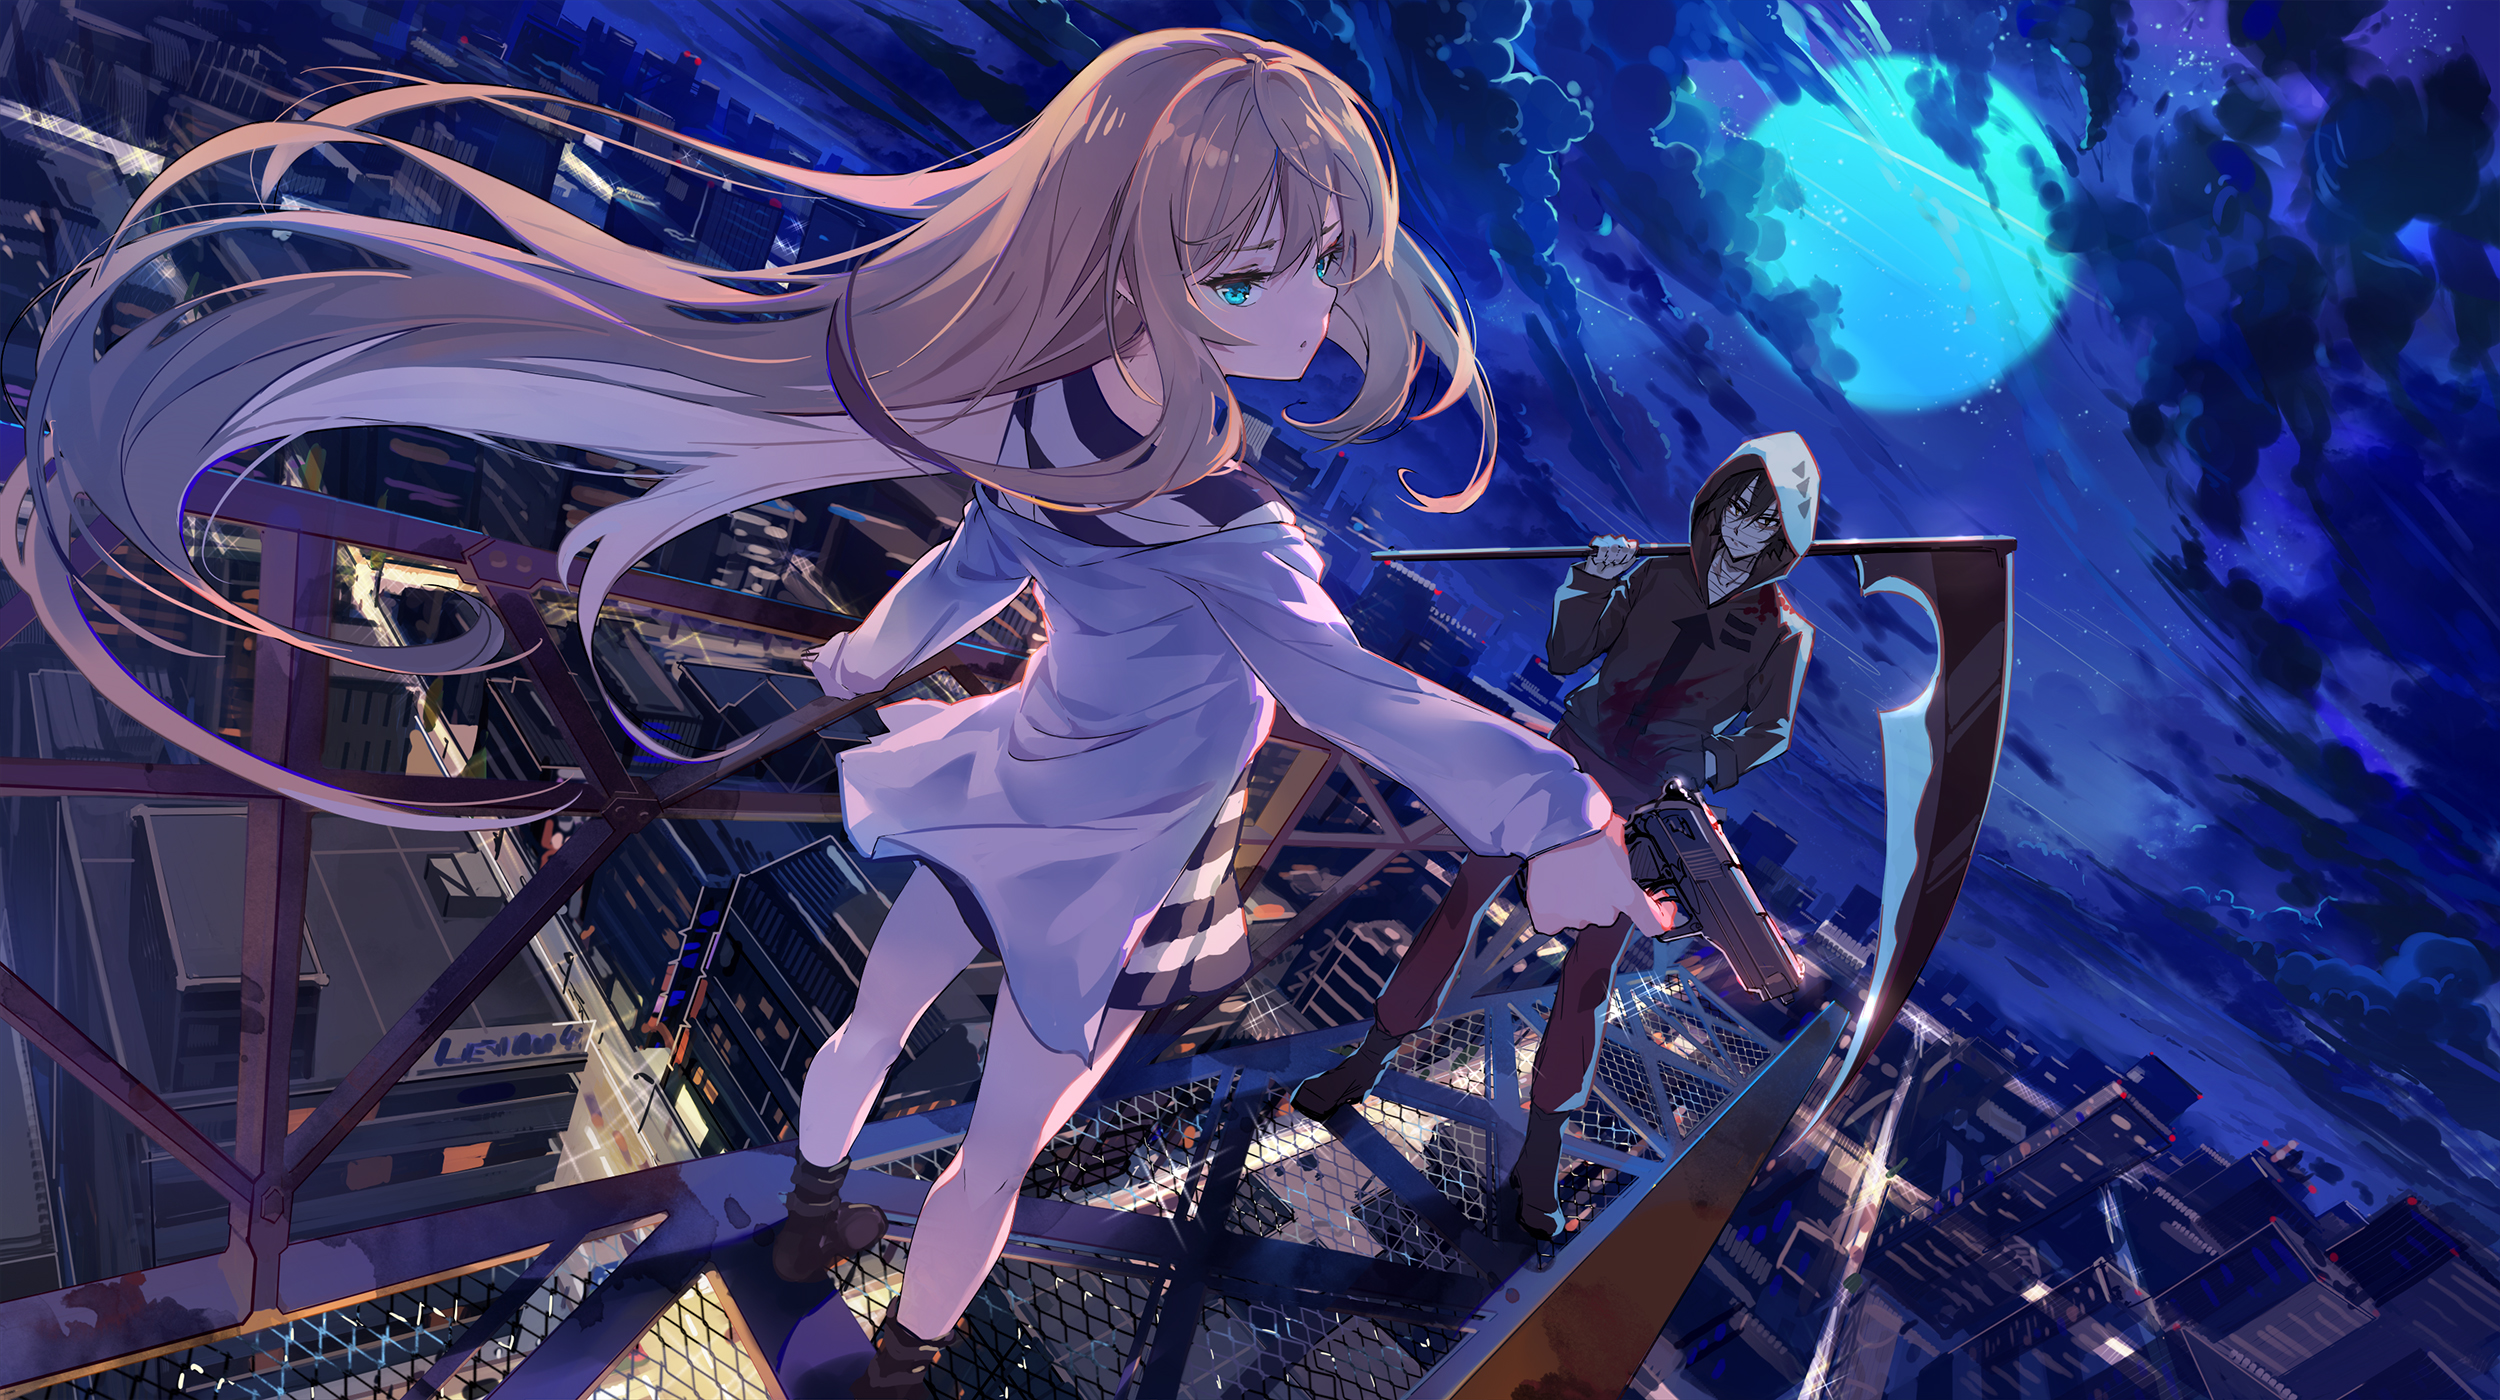 Angels Of Death Hd Wallpaper Background Image 2500x1400 Id